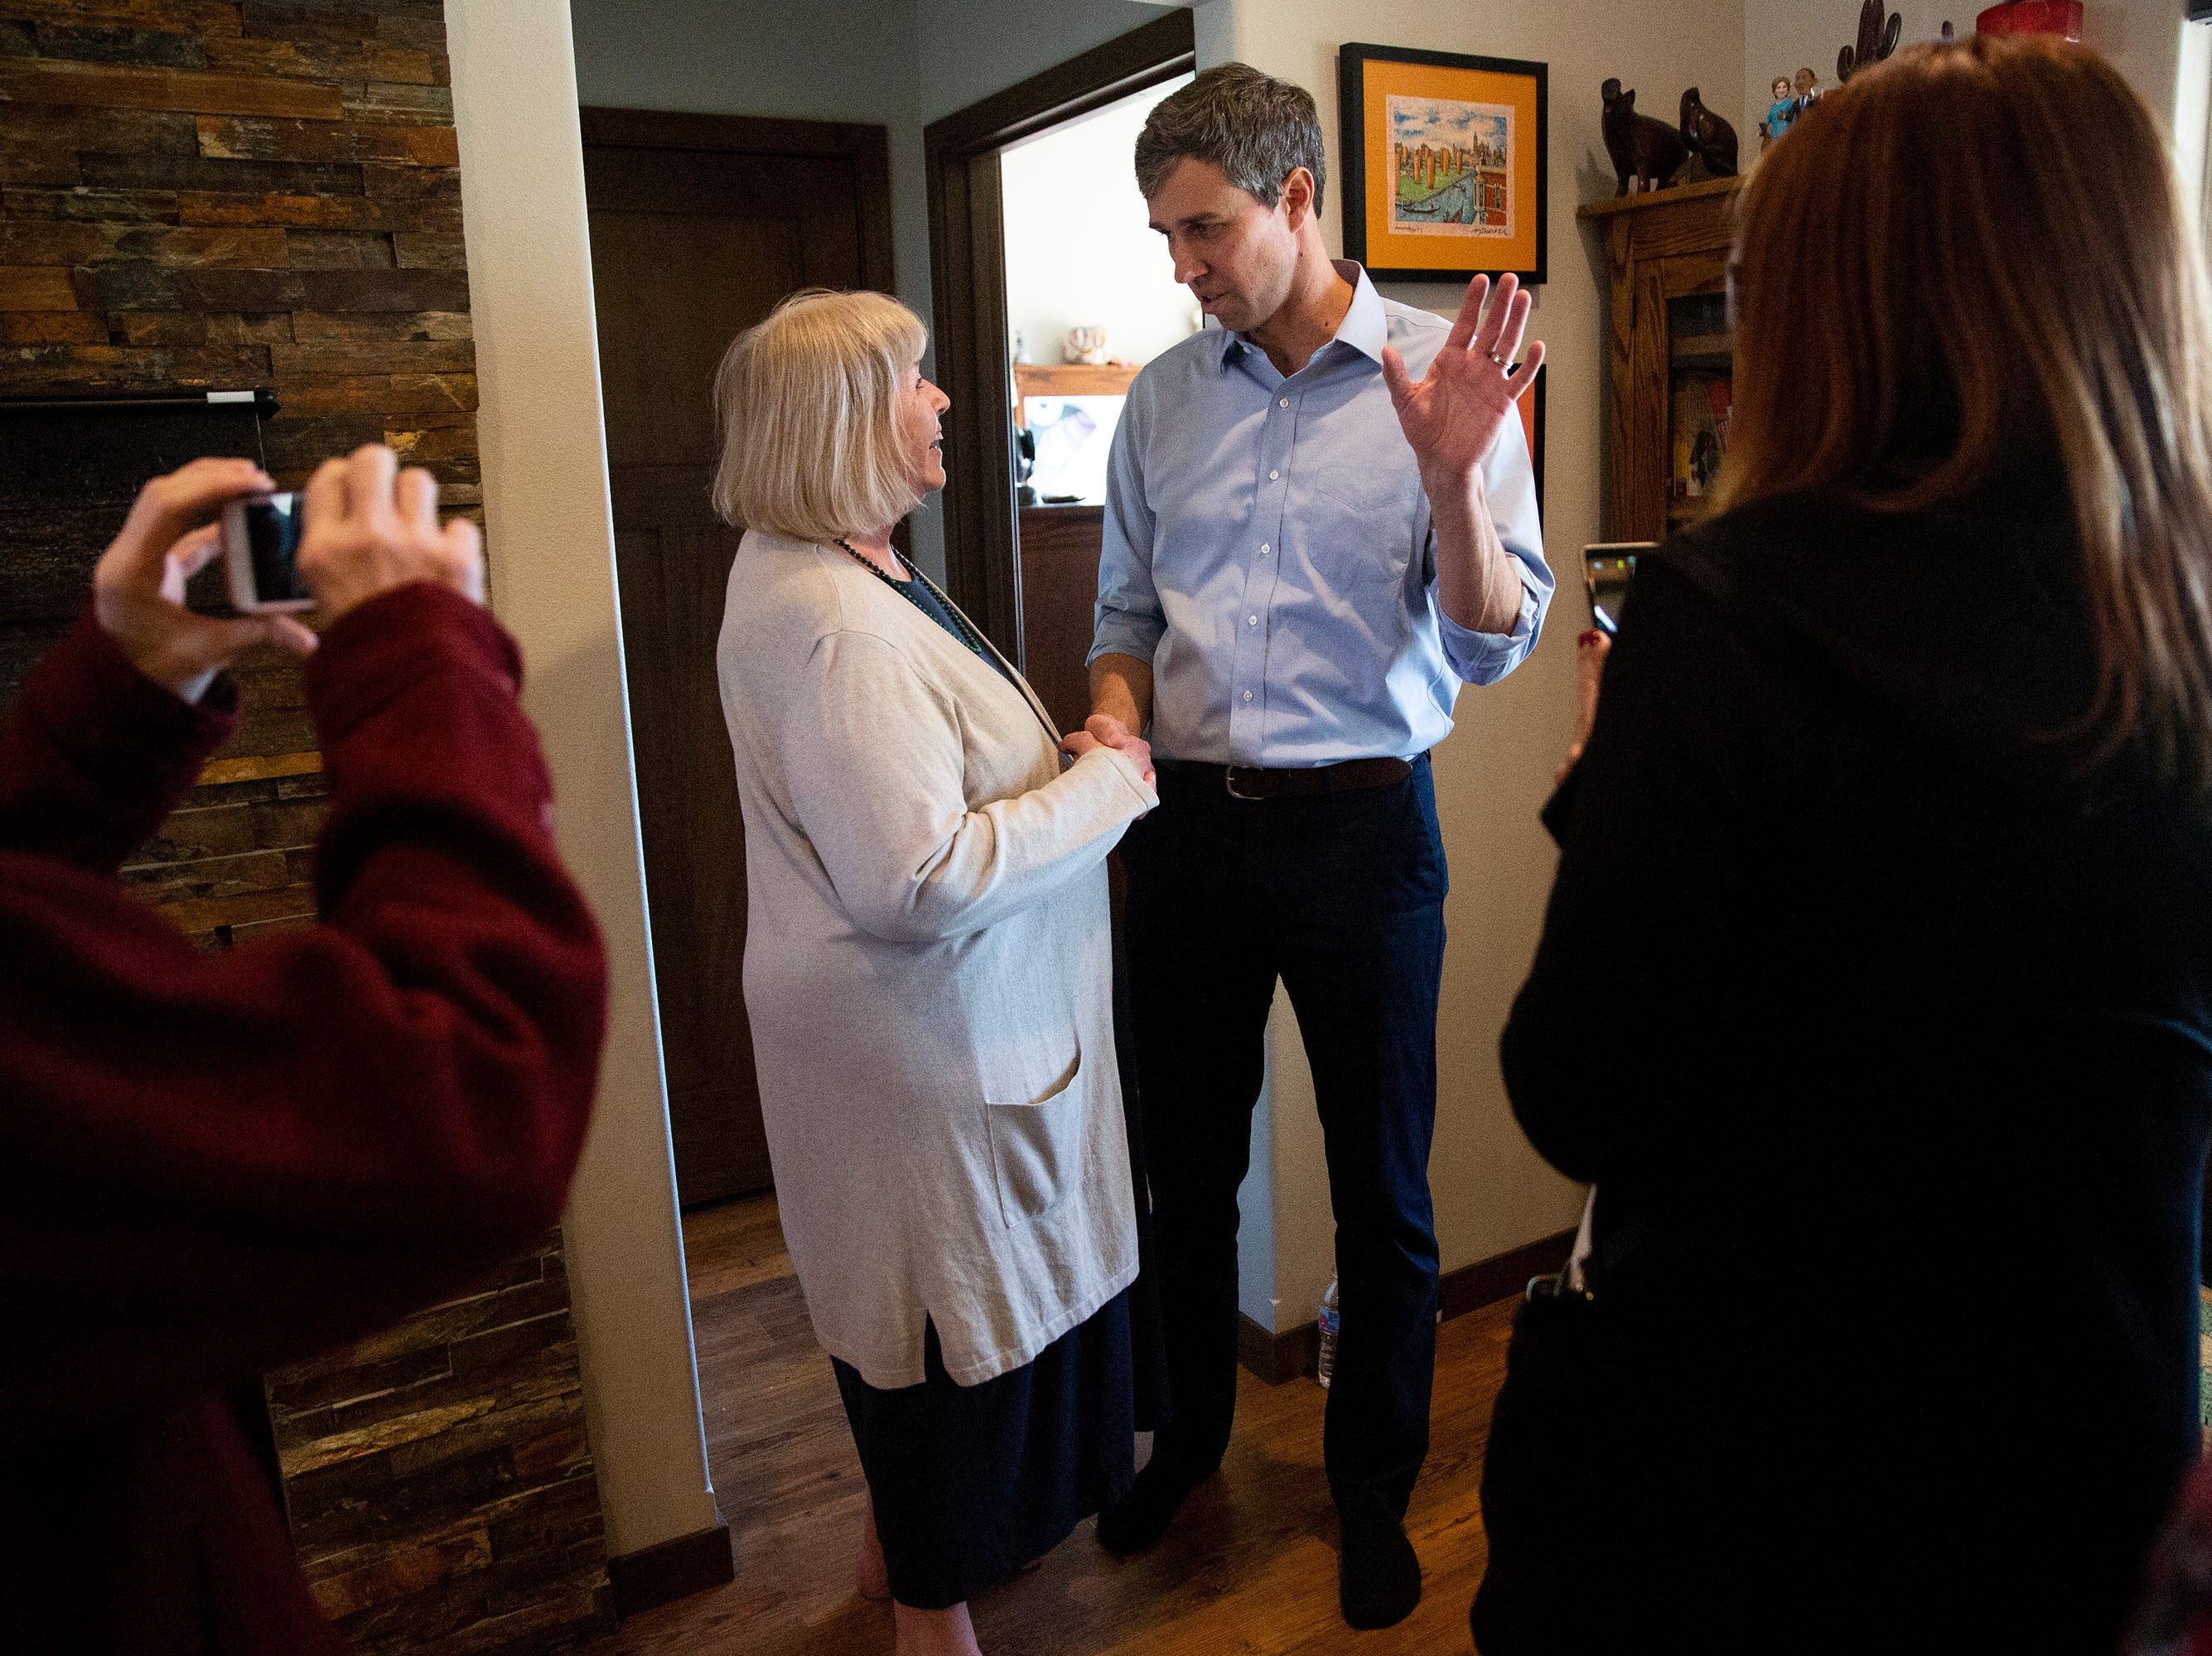 Beto O'Rourke, Democratic candidate for president, shakes hands with people who attended a house party to hear him speak on Friday, March 15, 2019, in Fairfield. This is O'Rourke's first trip to Iowa after announcing his campaign.